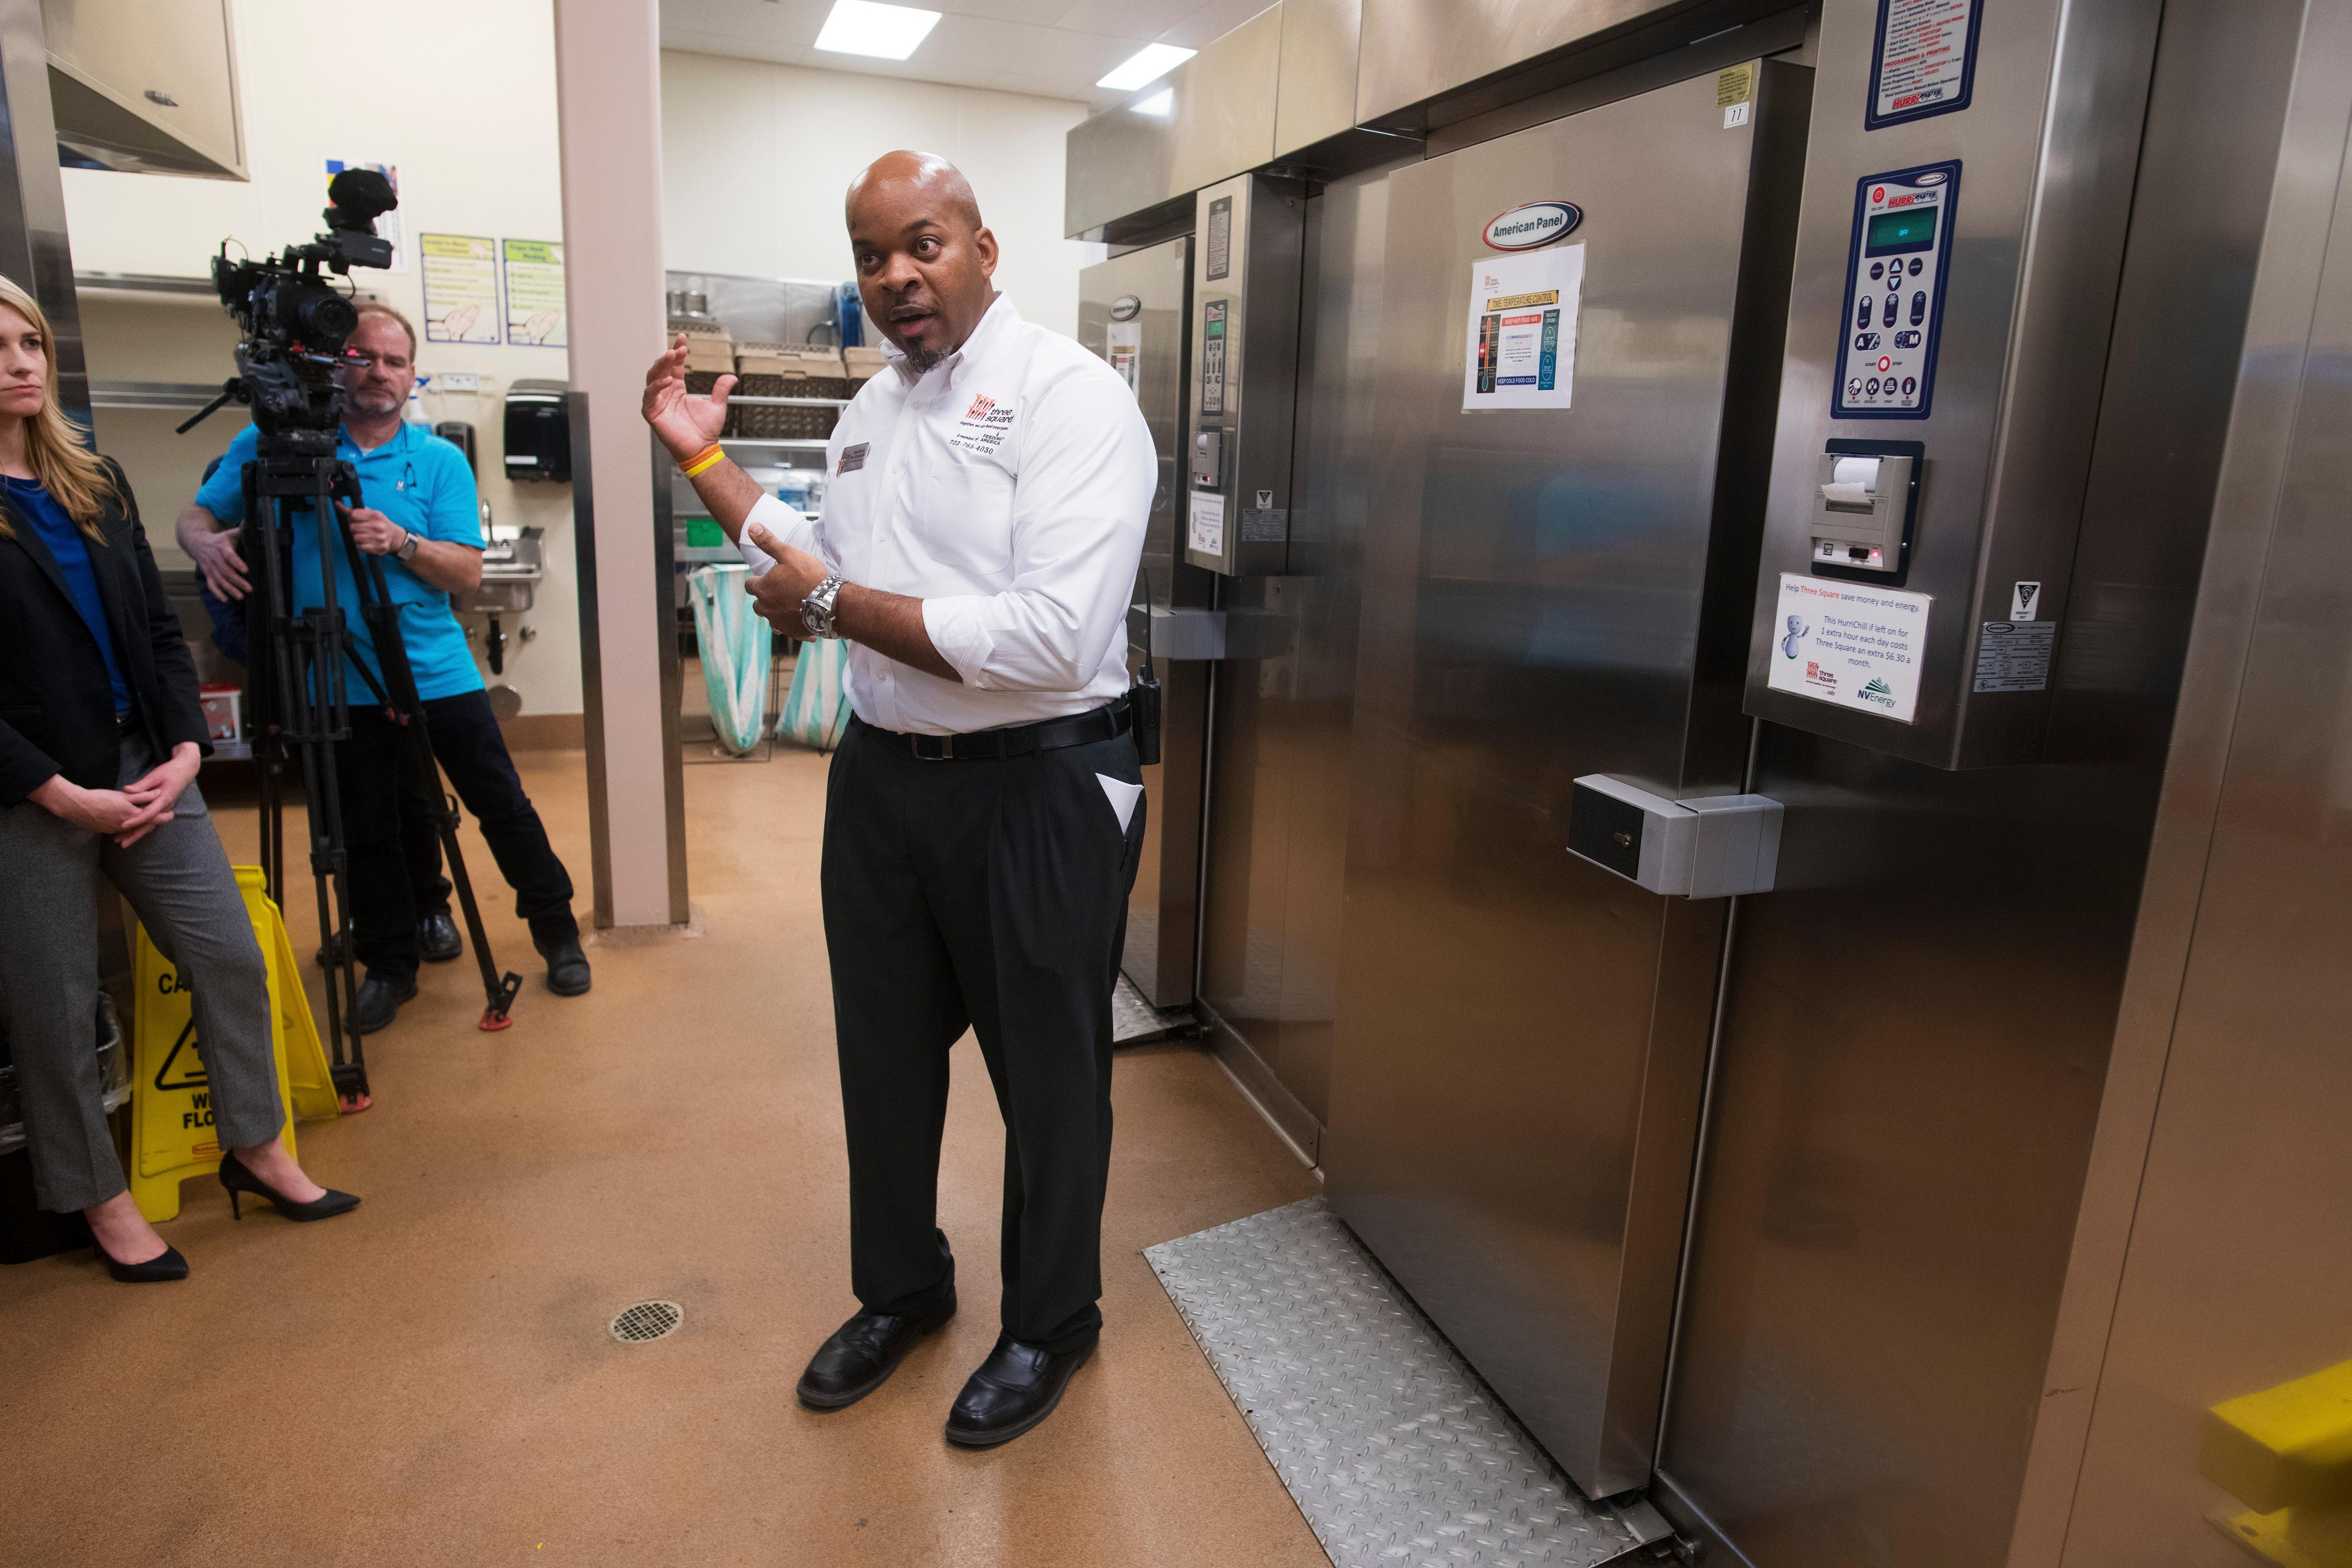 Three Square Director of Operations Maurice Johnson describes how excess banquet food frozen in the blast chillers behind him during an event announcing a partnership between MGM Resorts International and Three Square food bank to expand their surplus banquet food rescue program Wednesday, January 17, 2018. CREDIT: Sam Morris/Las Vegas News Bureau